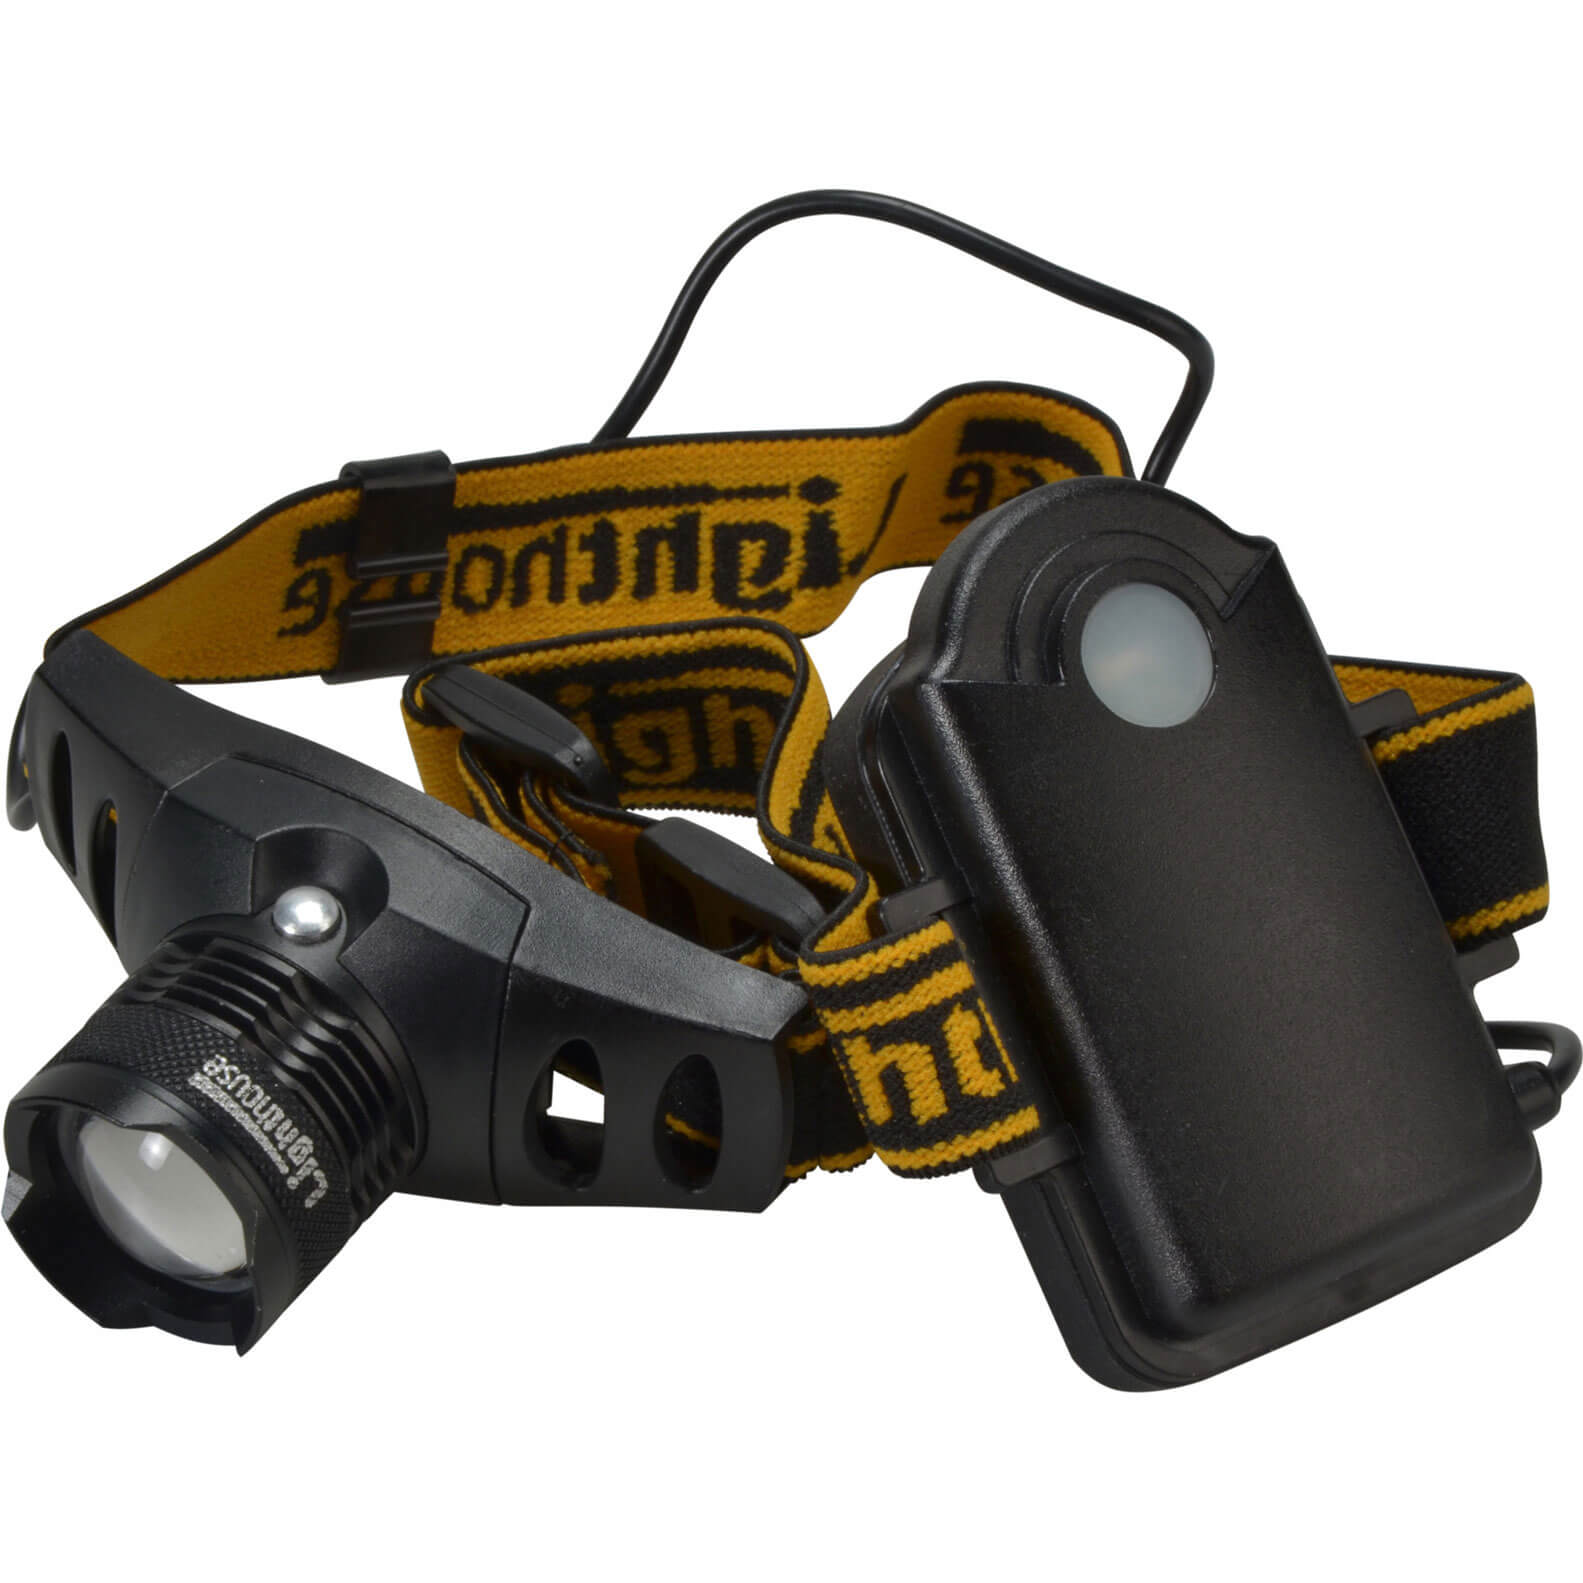 Image of Lighthouse 3 Function CREE XPE LED Head Torch 220 Lumens